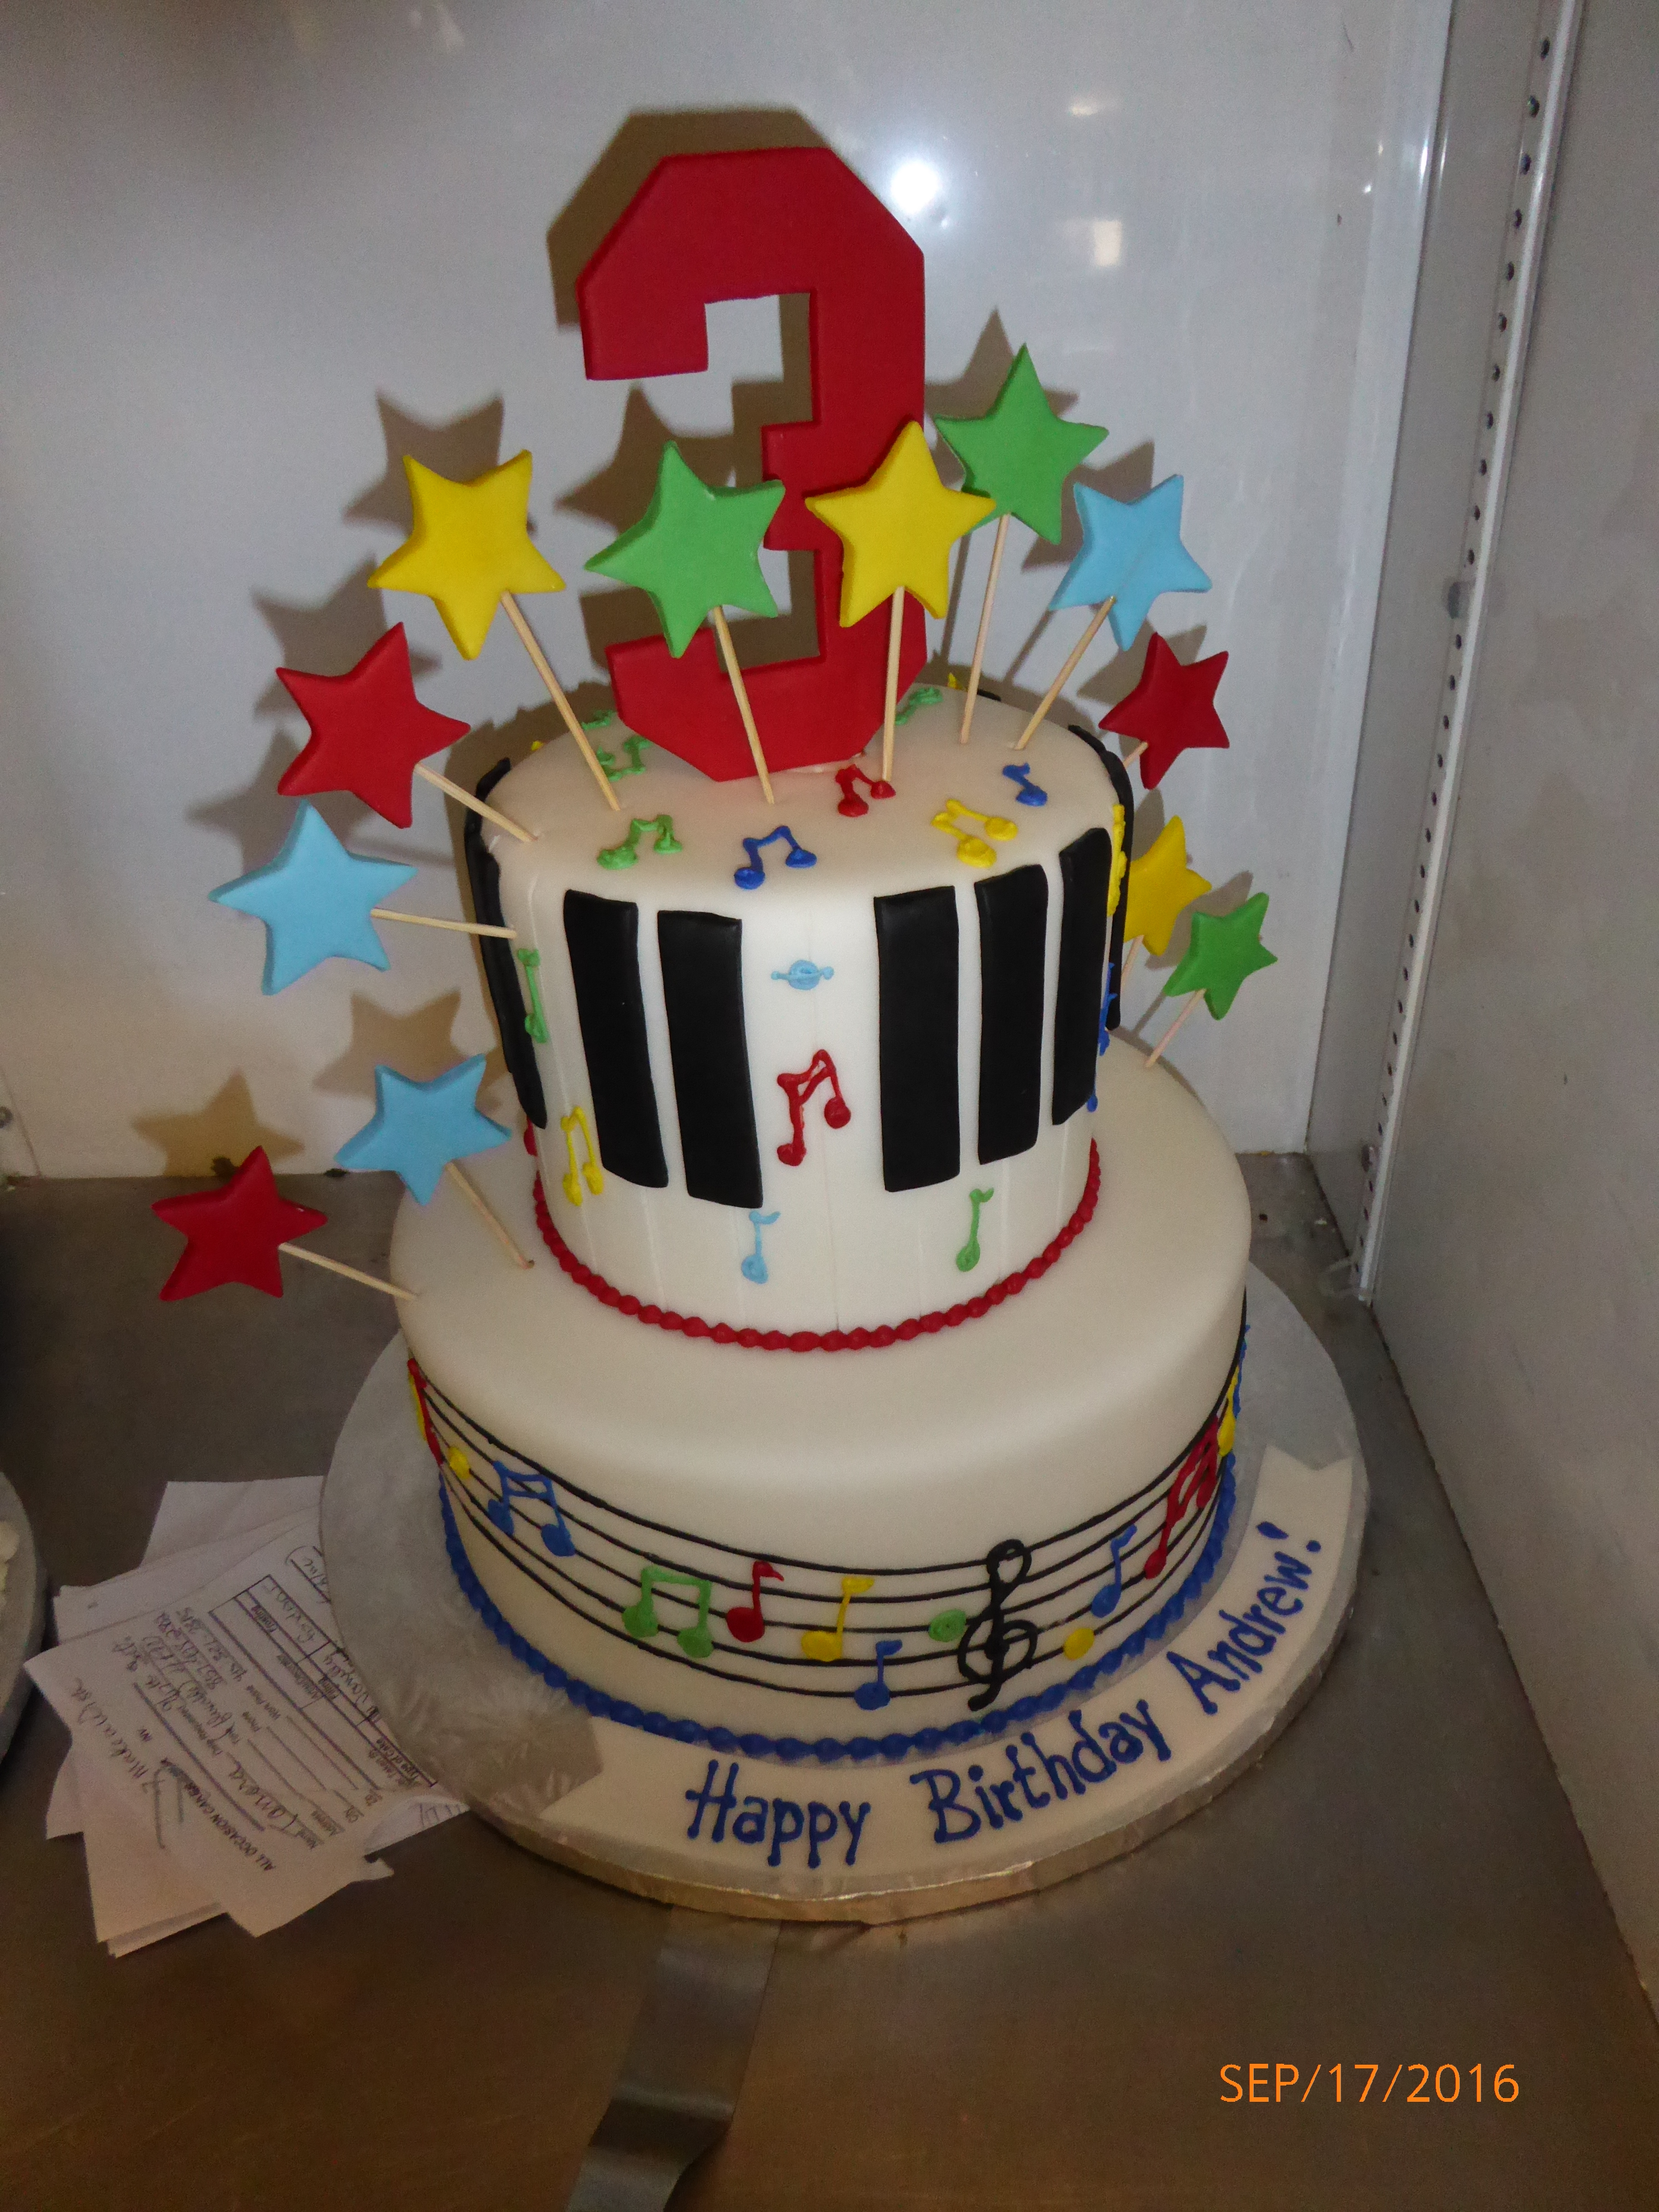 3026, 3rd birthday, third birthday, music, notes, note, piano, star, stars, red, blue, yellow, green, tiered